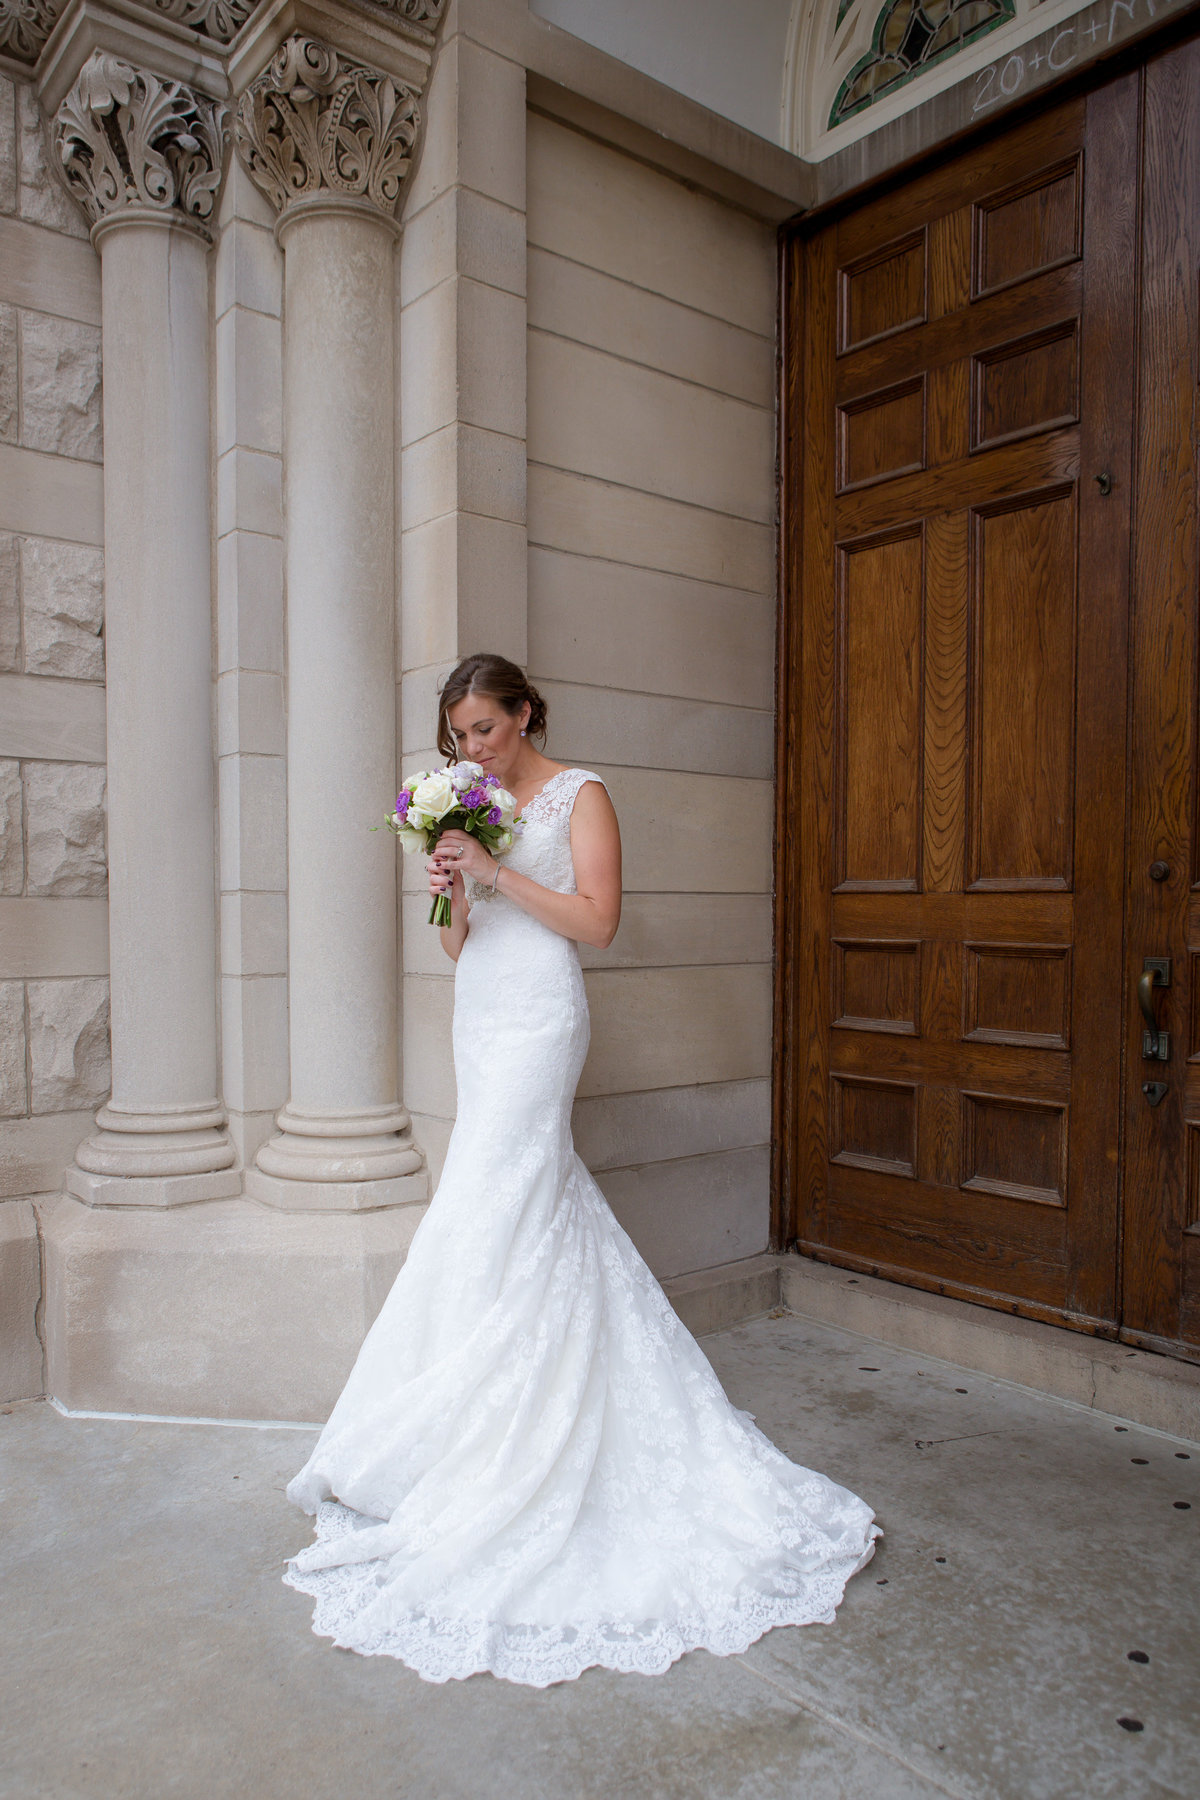 Weddings - Holly Dawn Photography - Wedding Photography - Family Photography - St. Charles - St. Louis - Missouri -29